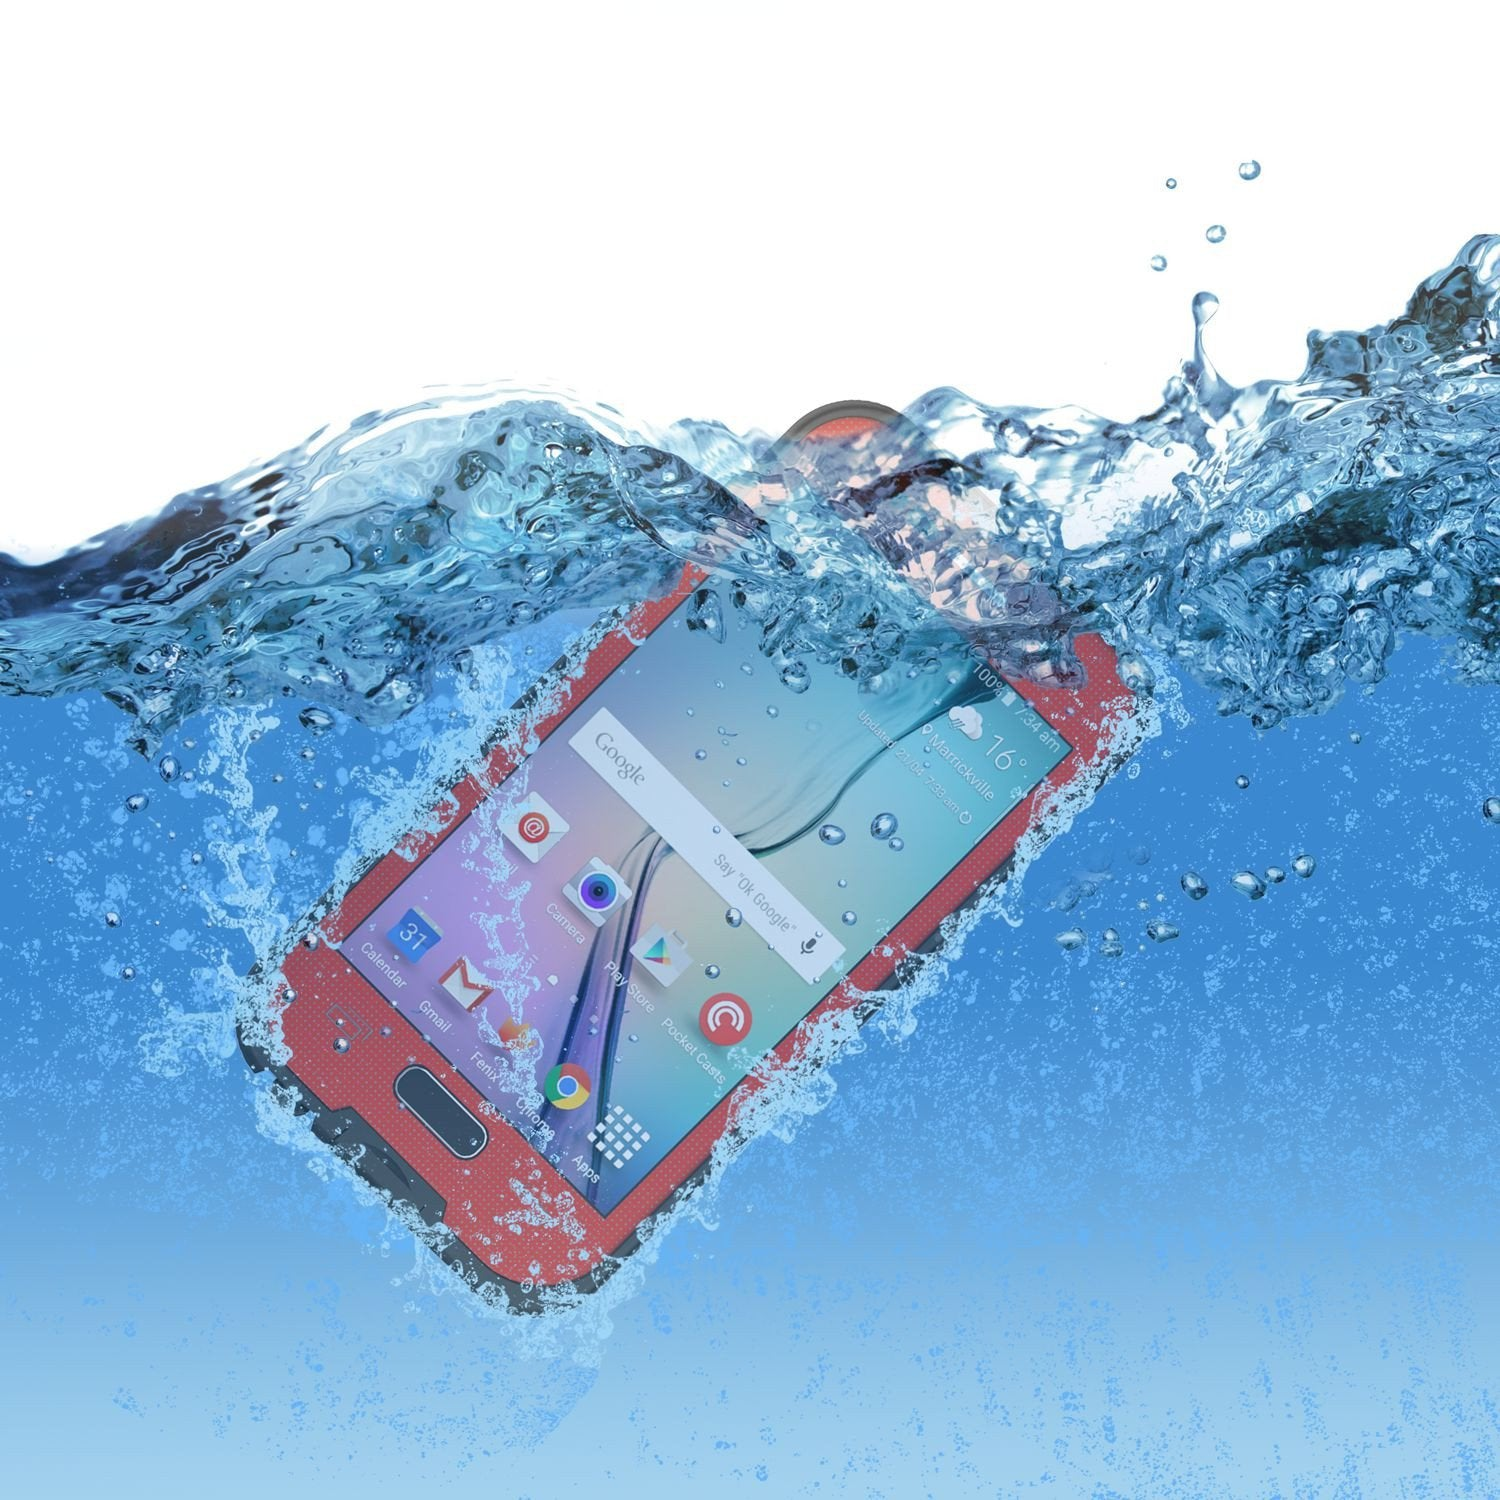 Galaxy S6 Waterproof Case, Punkcase SpikeStar Red Water/Shock/Dirt/Snow Proof | Lifetime Warranty